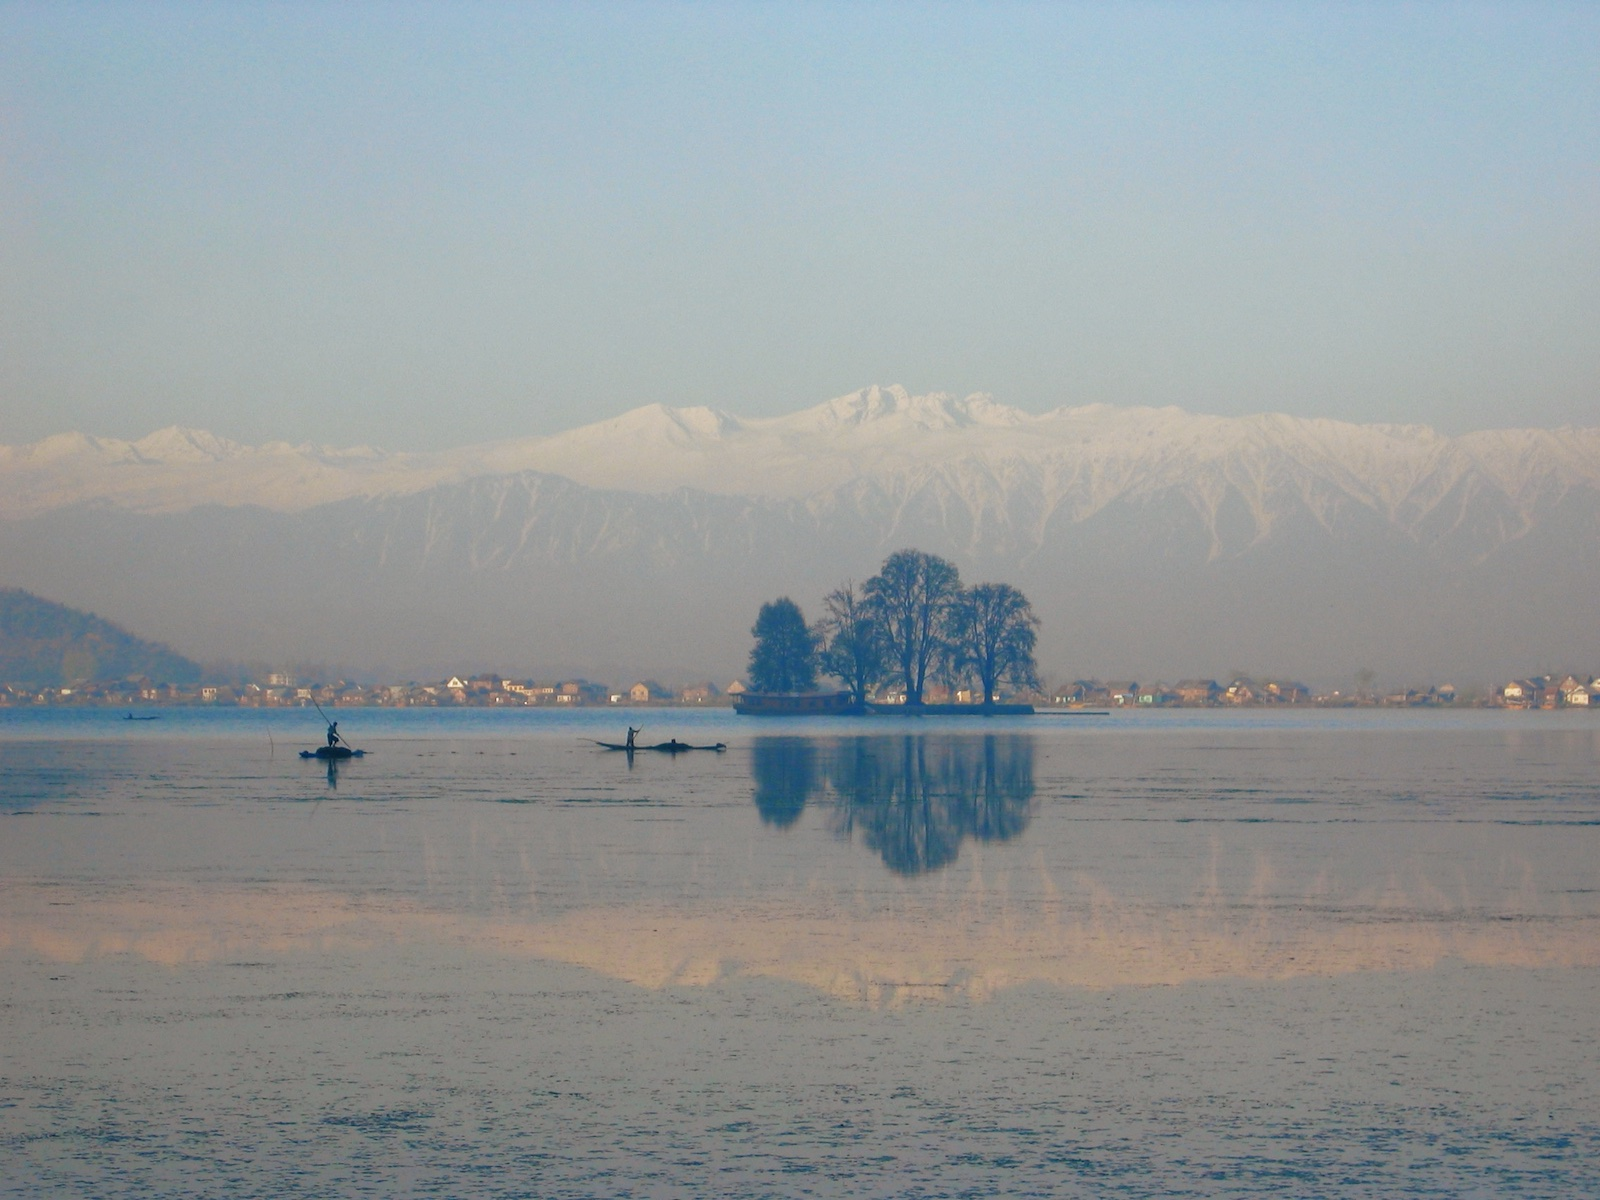 early morning view in April 2006 across Dal Lake, Srinagar, Kashmir to the snow covered Pir Panjal Himalayan mountains